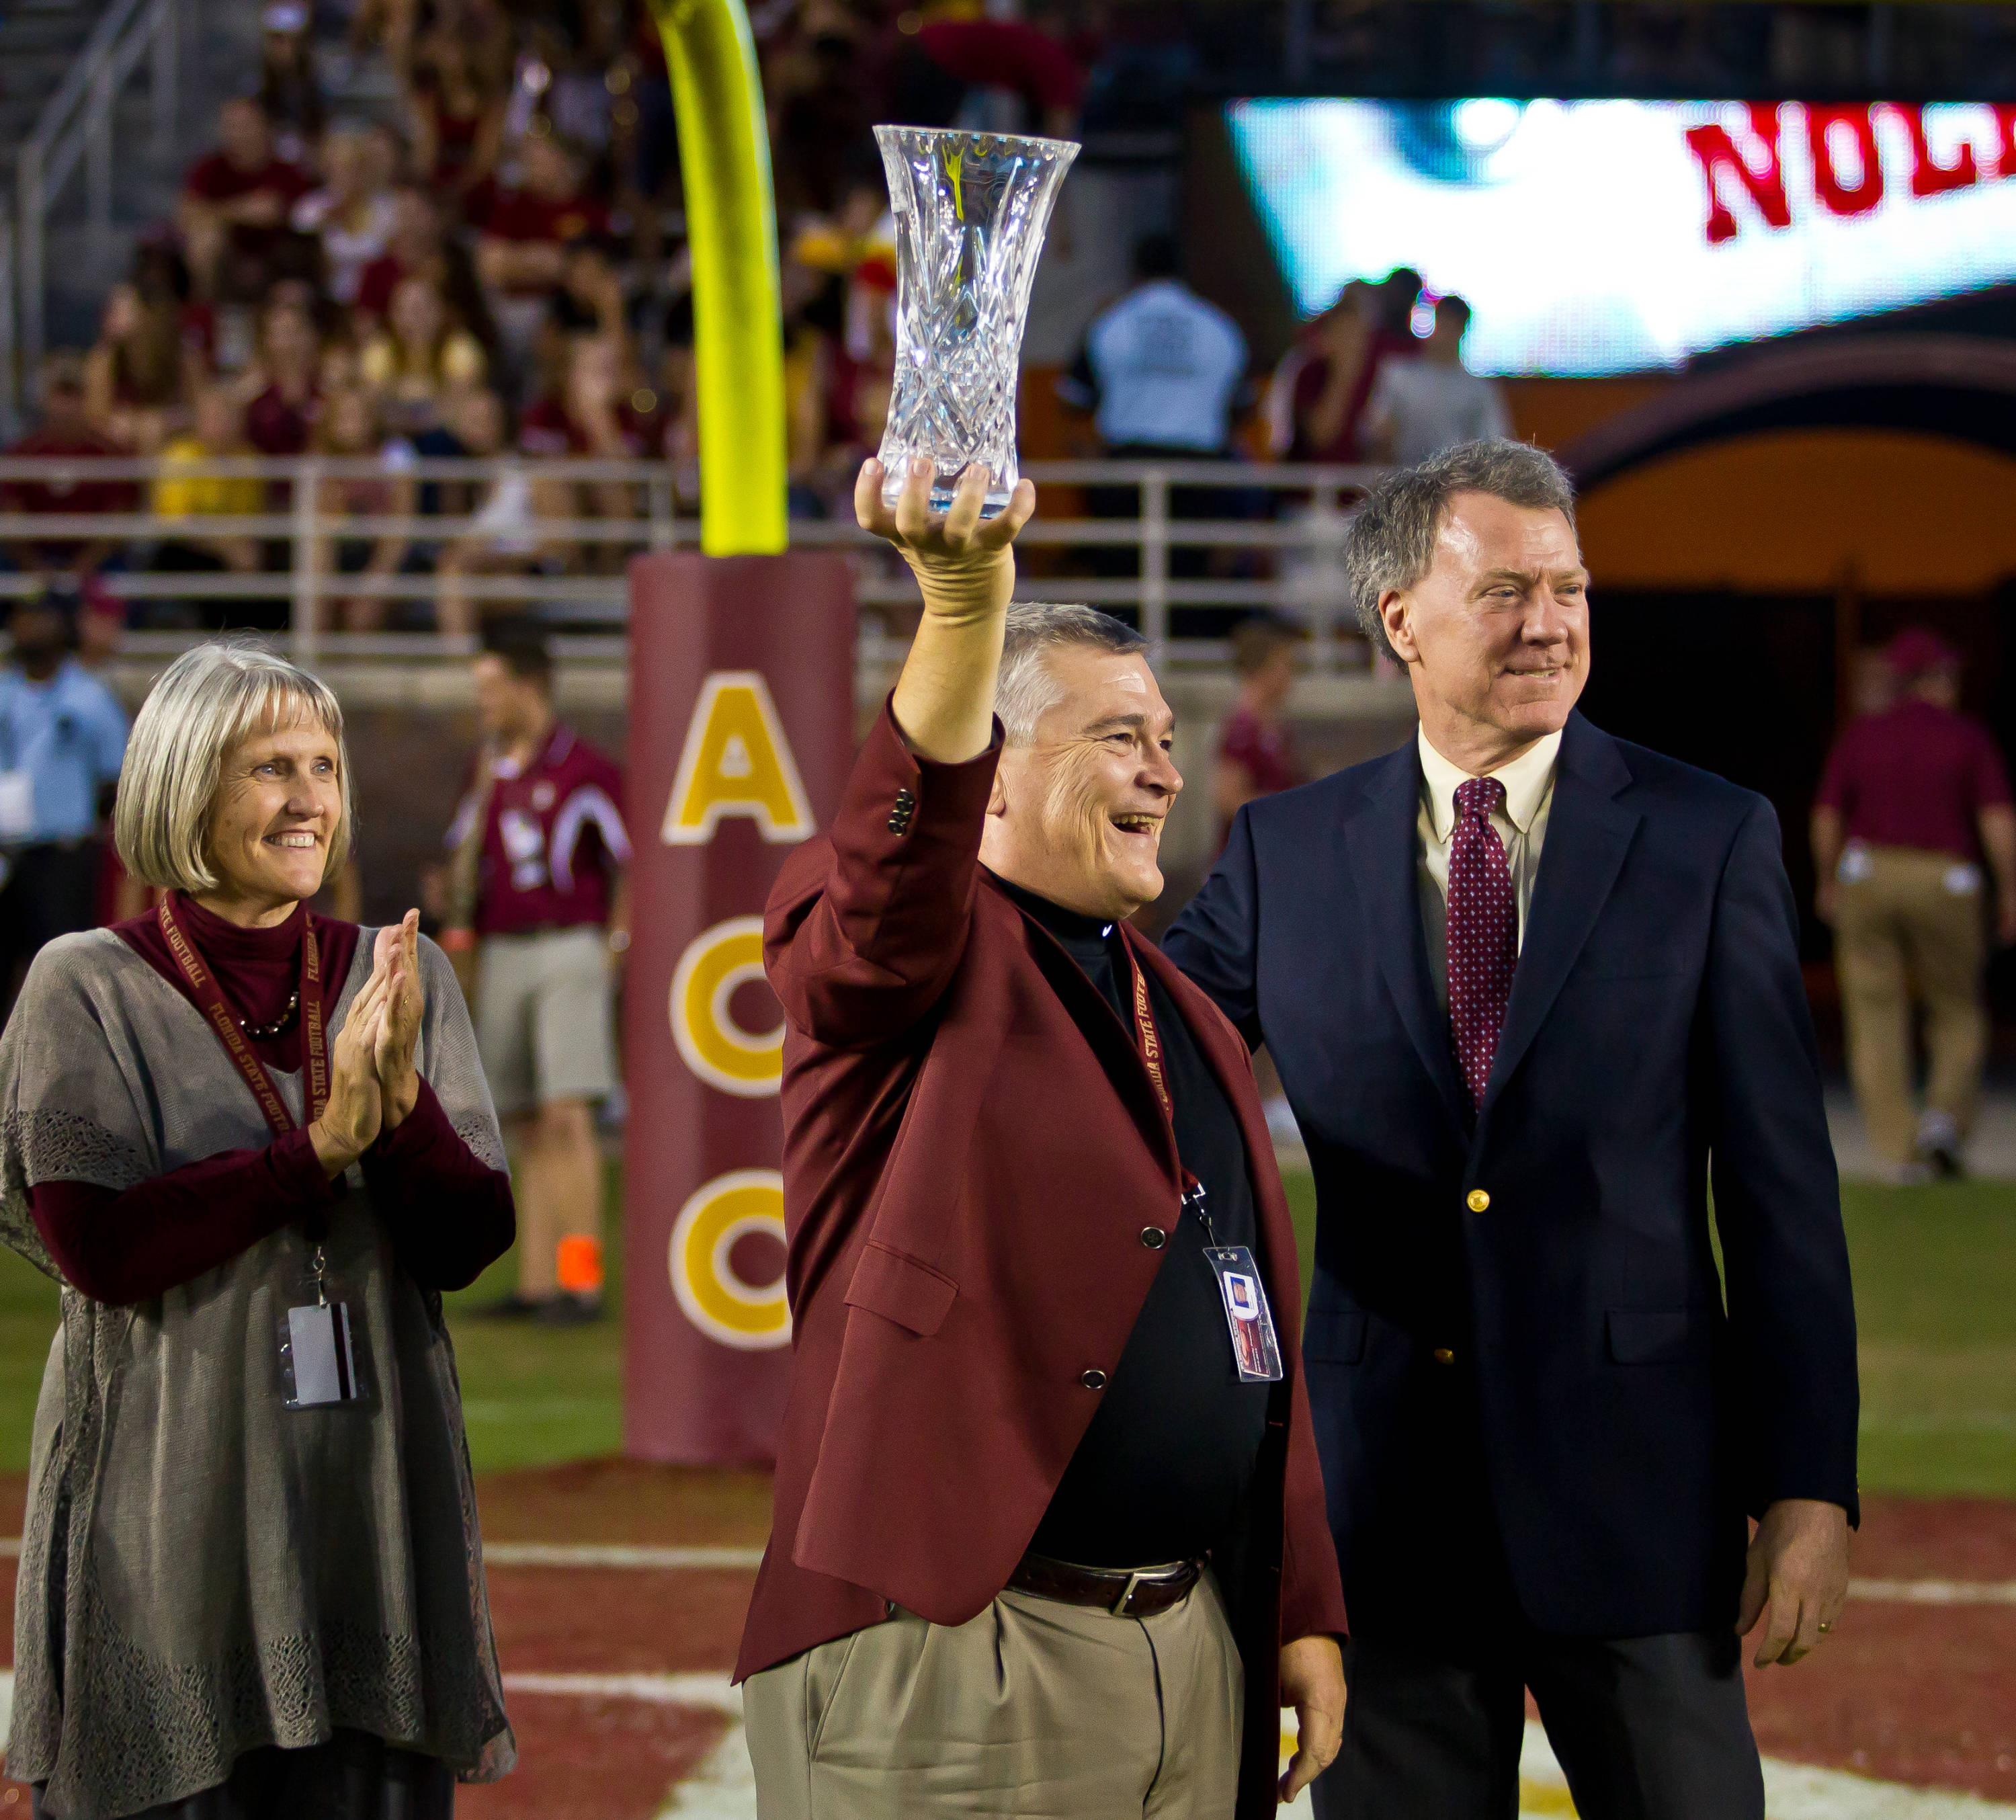 Eric Barron holds up FSU's Director's Cup trophy.